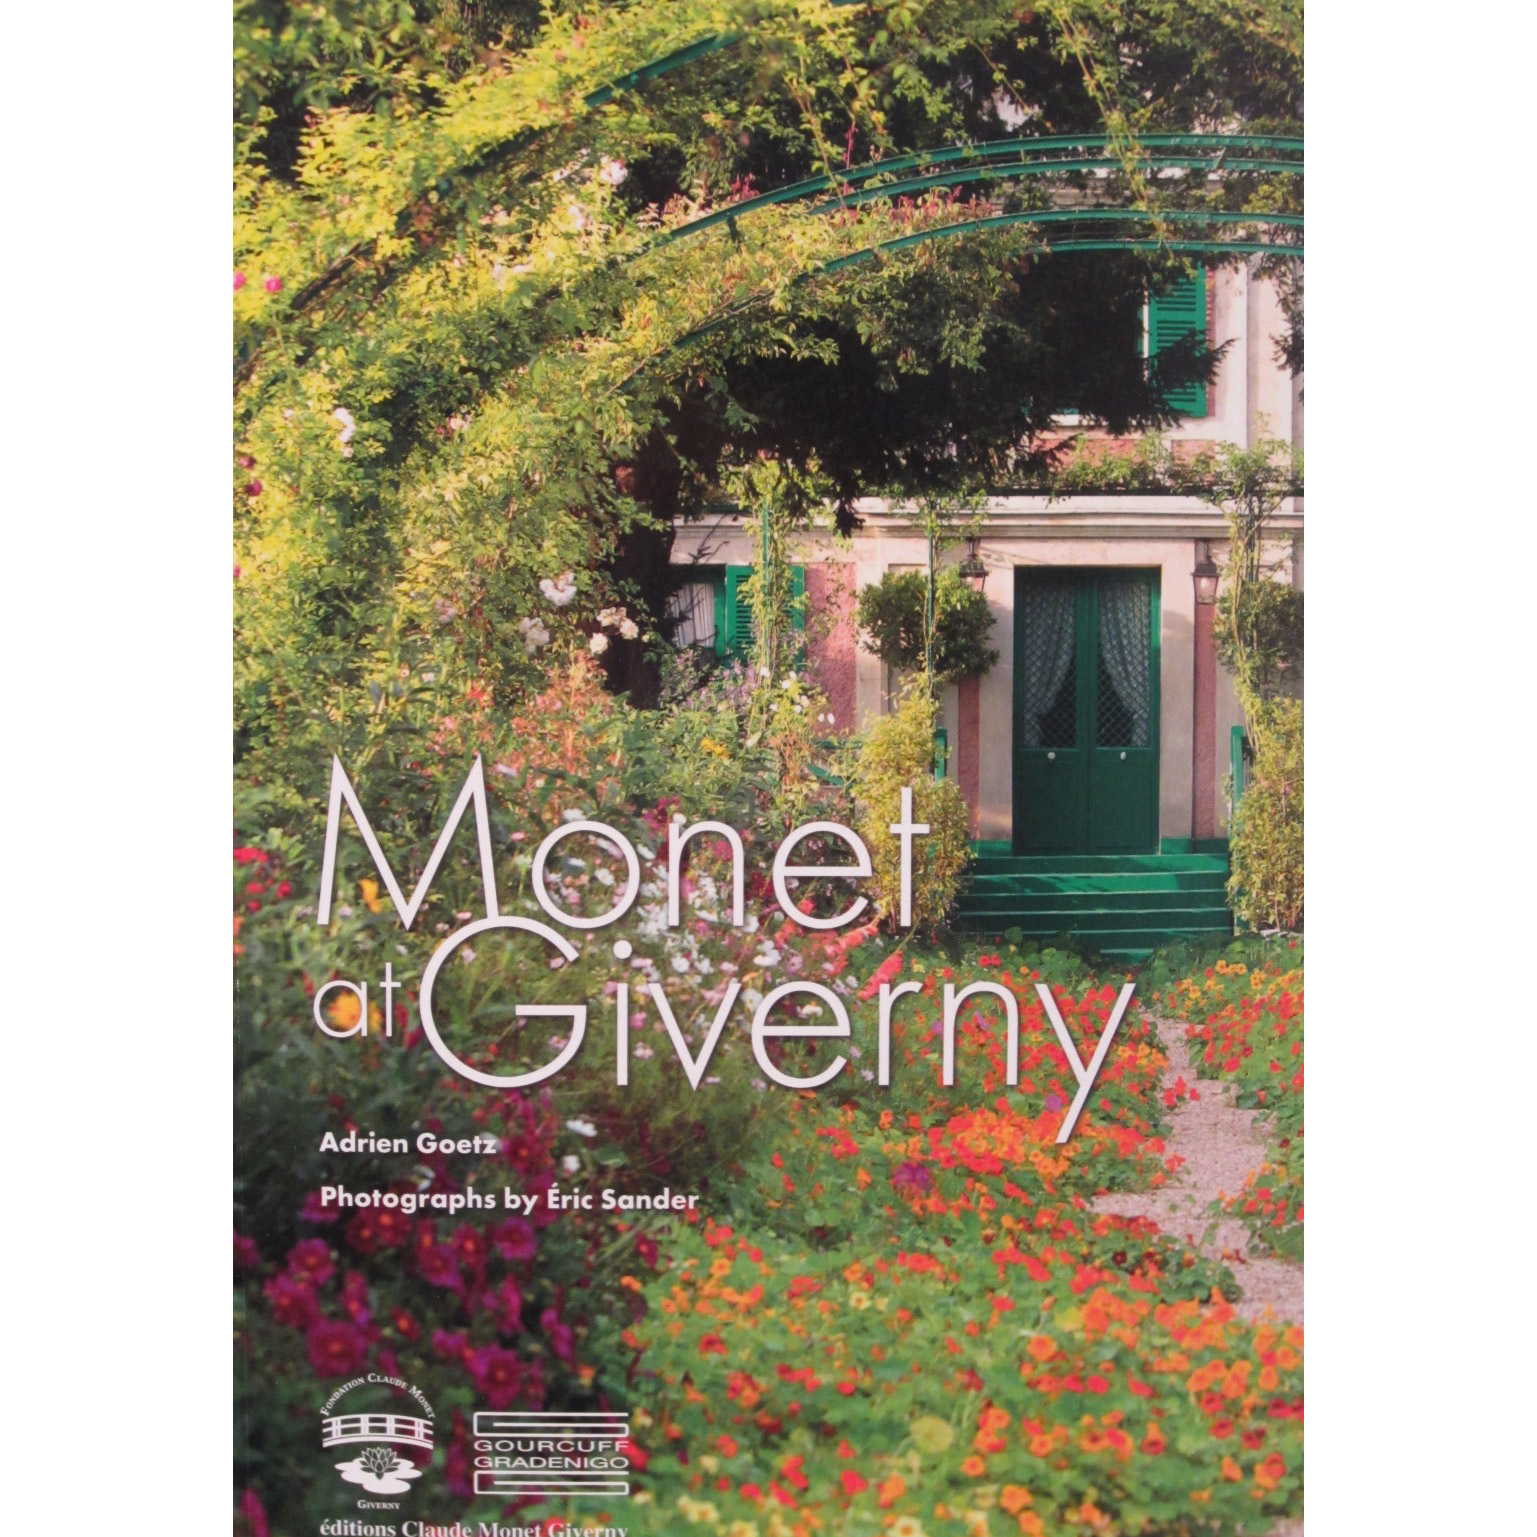 Fondation claude monet monet at giverny fondation claude monet - Livre le jardin de monet ...